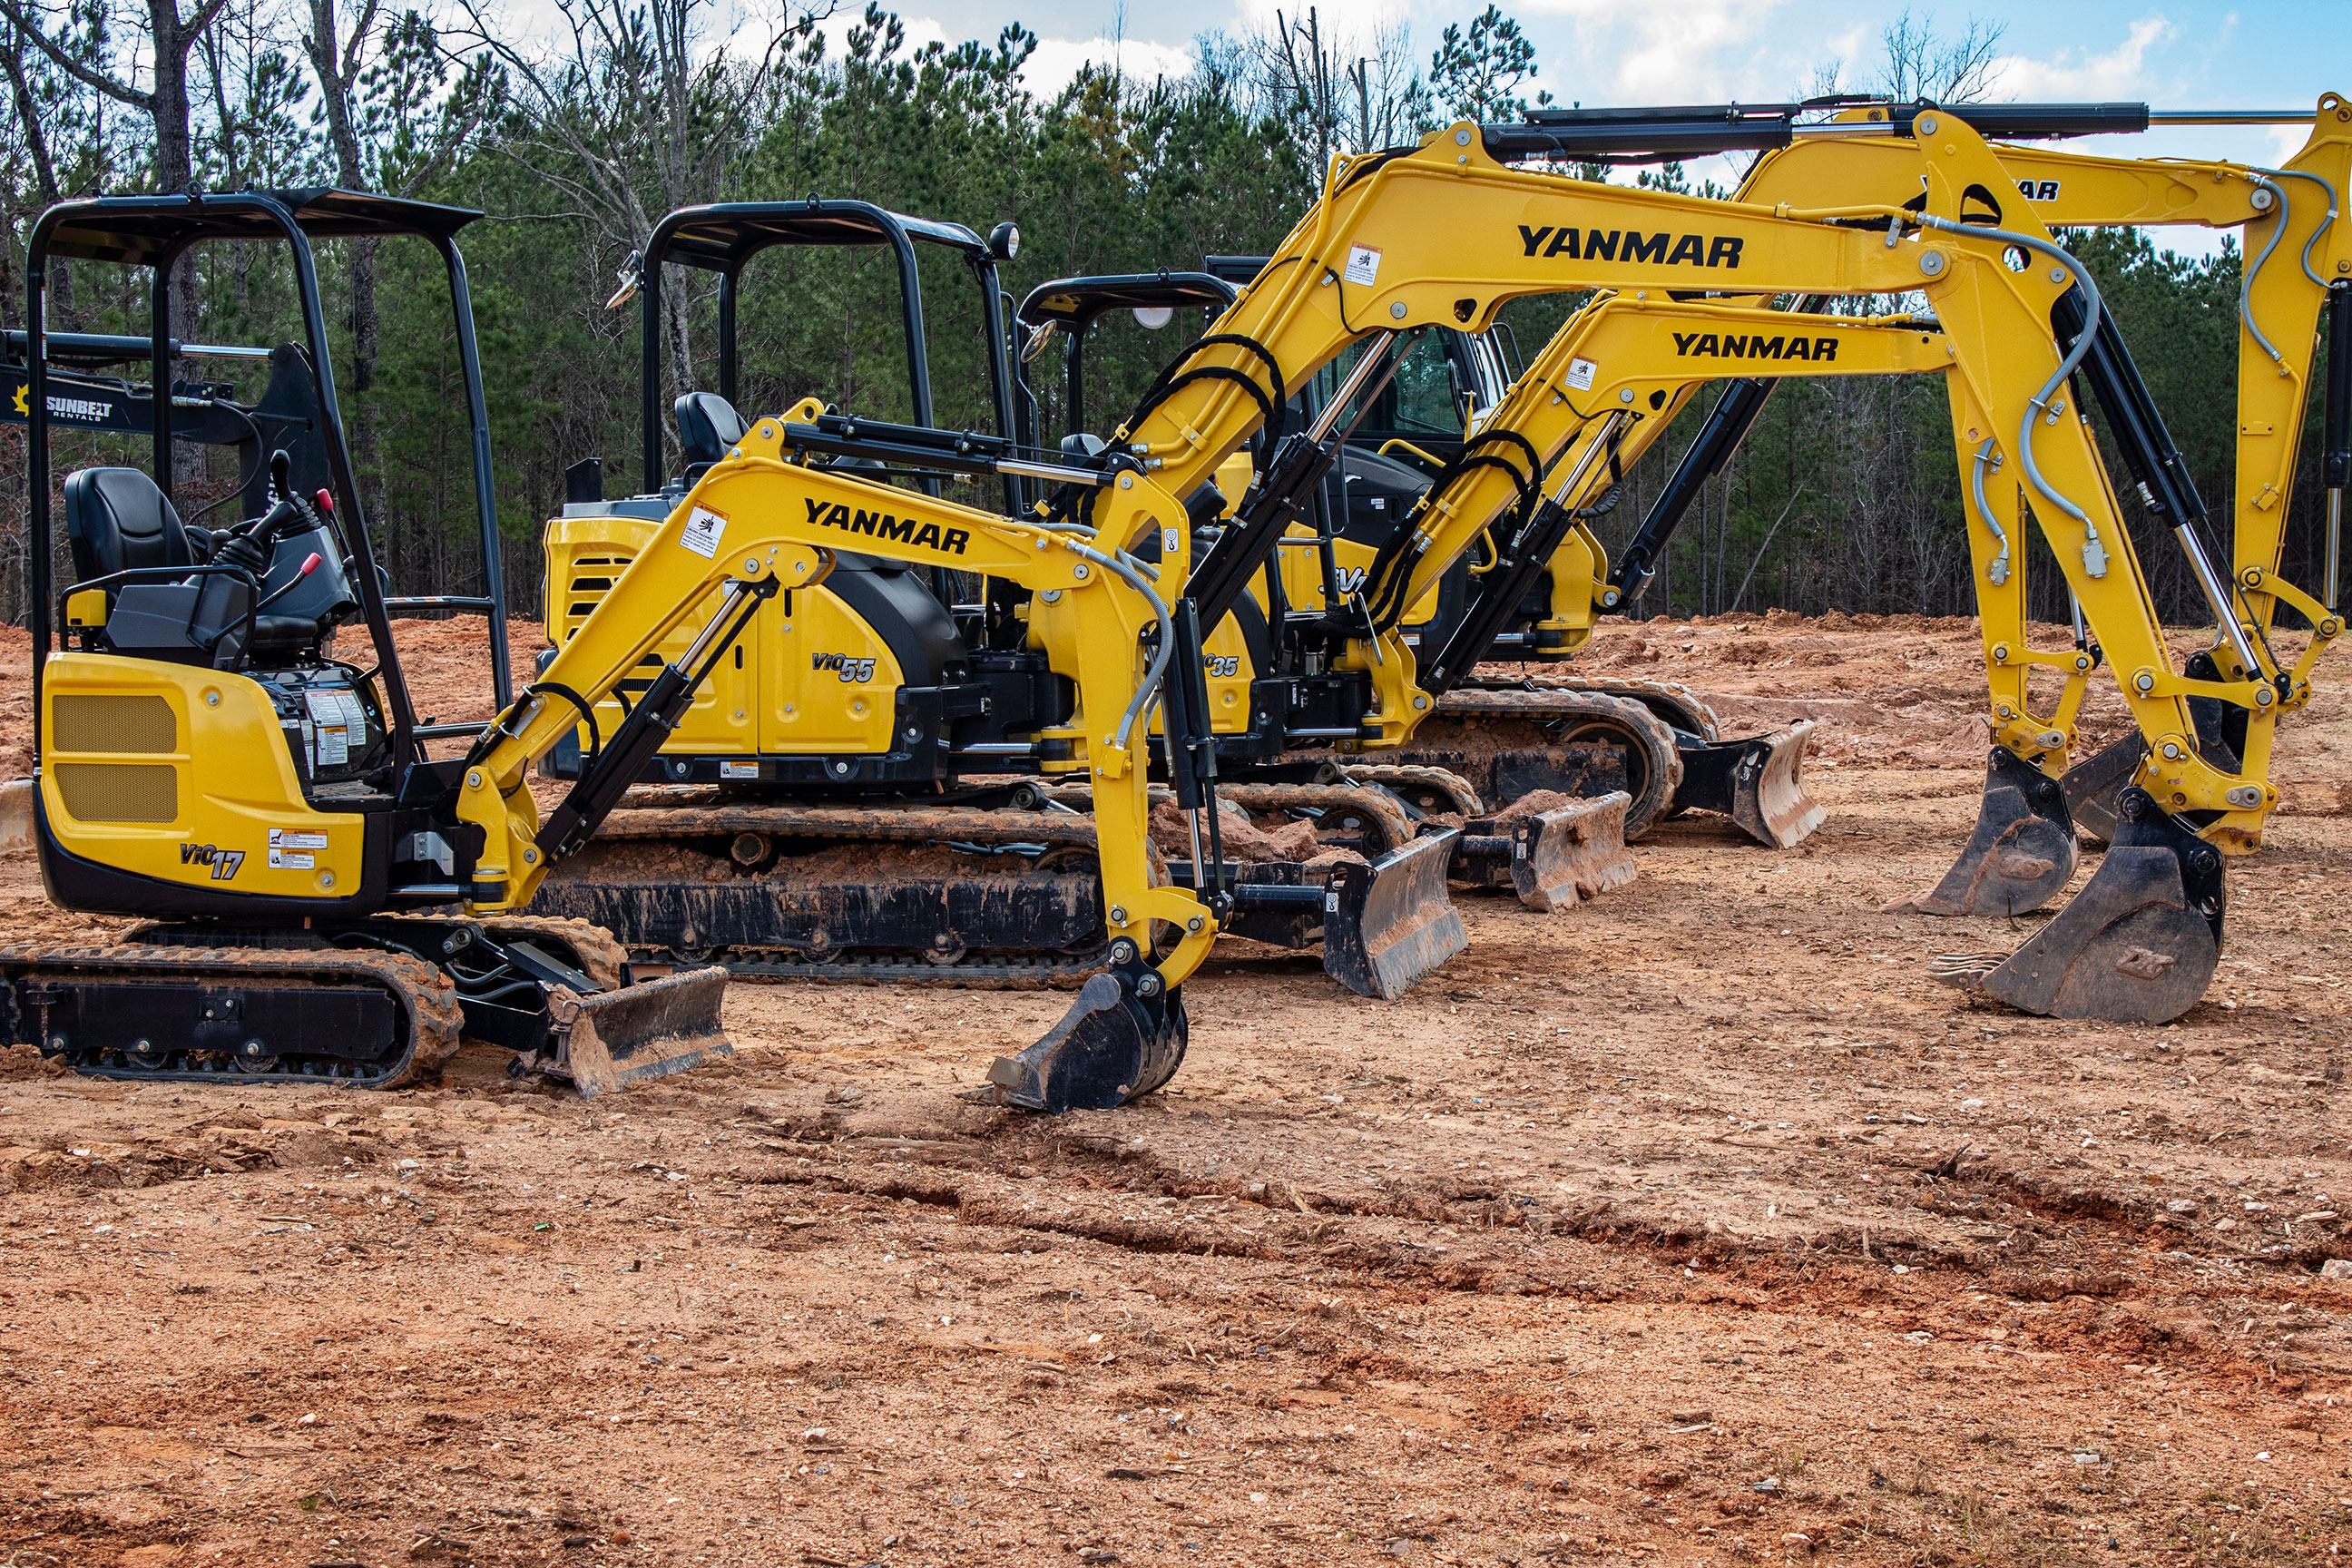 Yanmar Excavator ViO17 - Make the switch today!